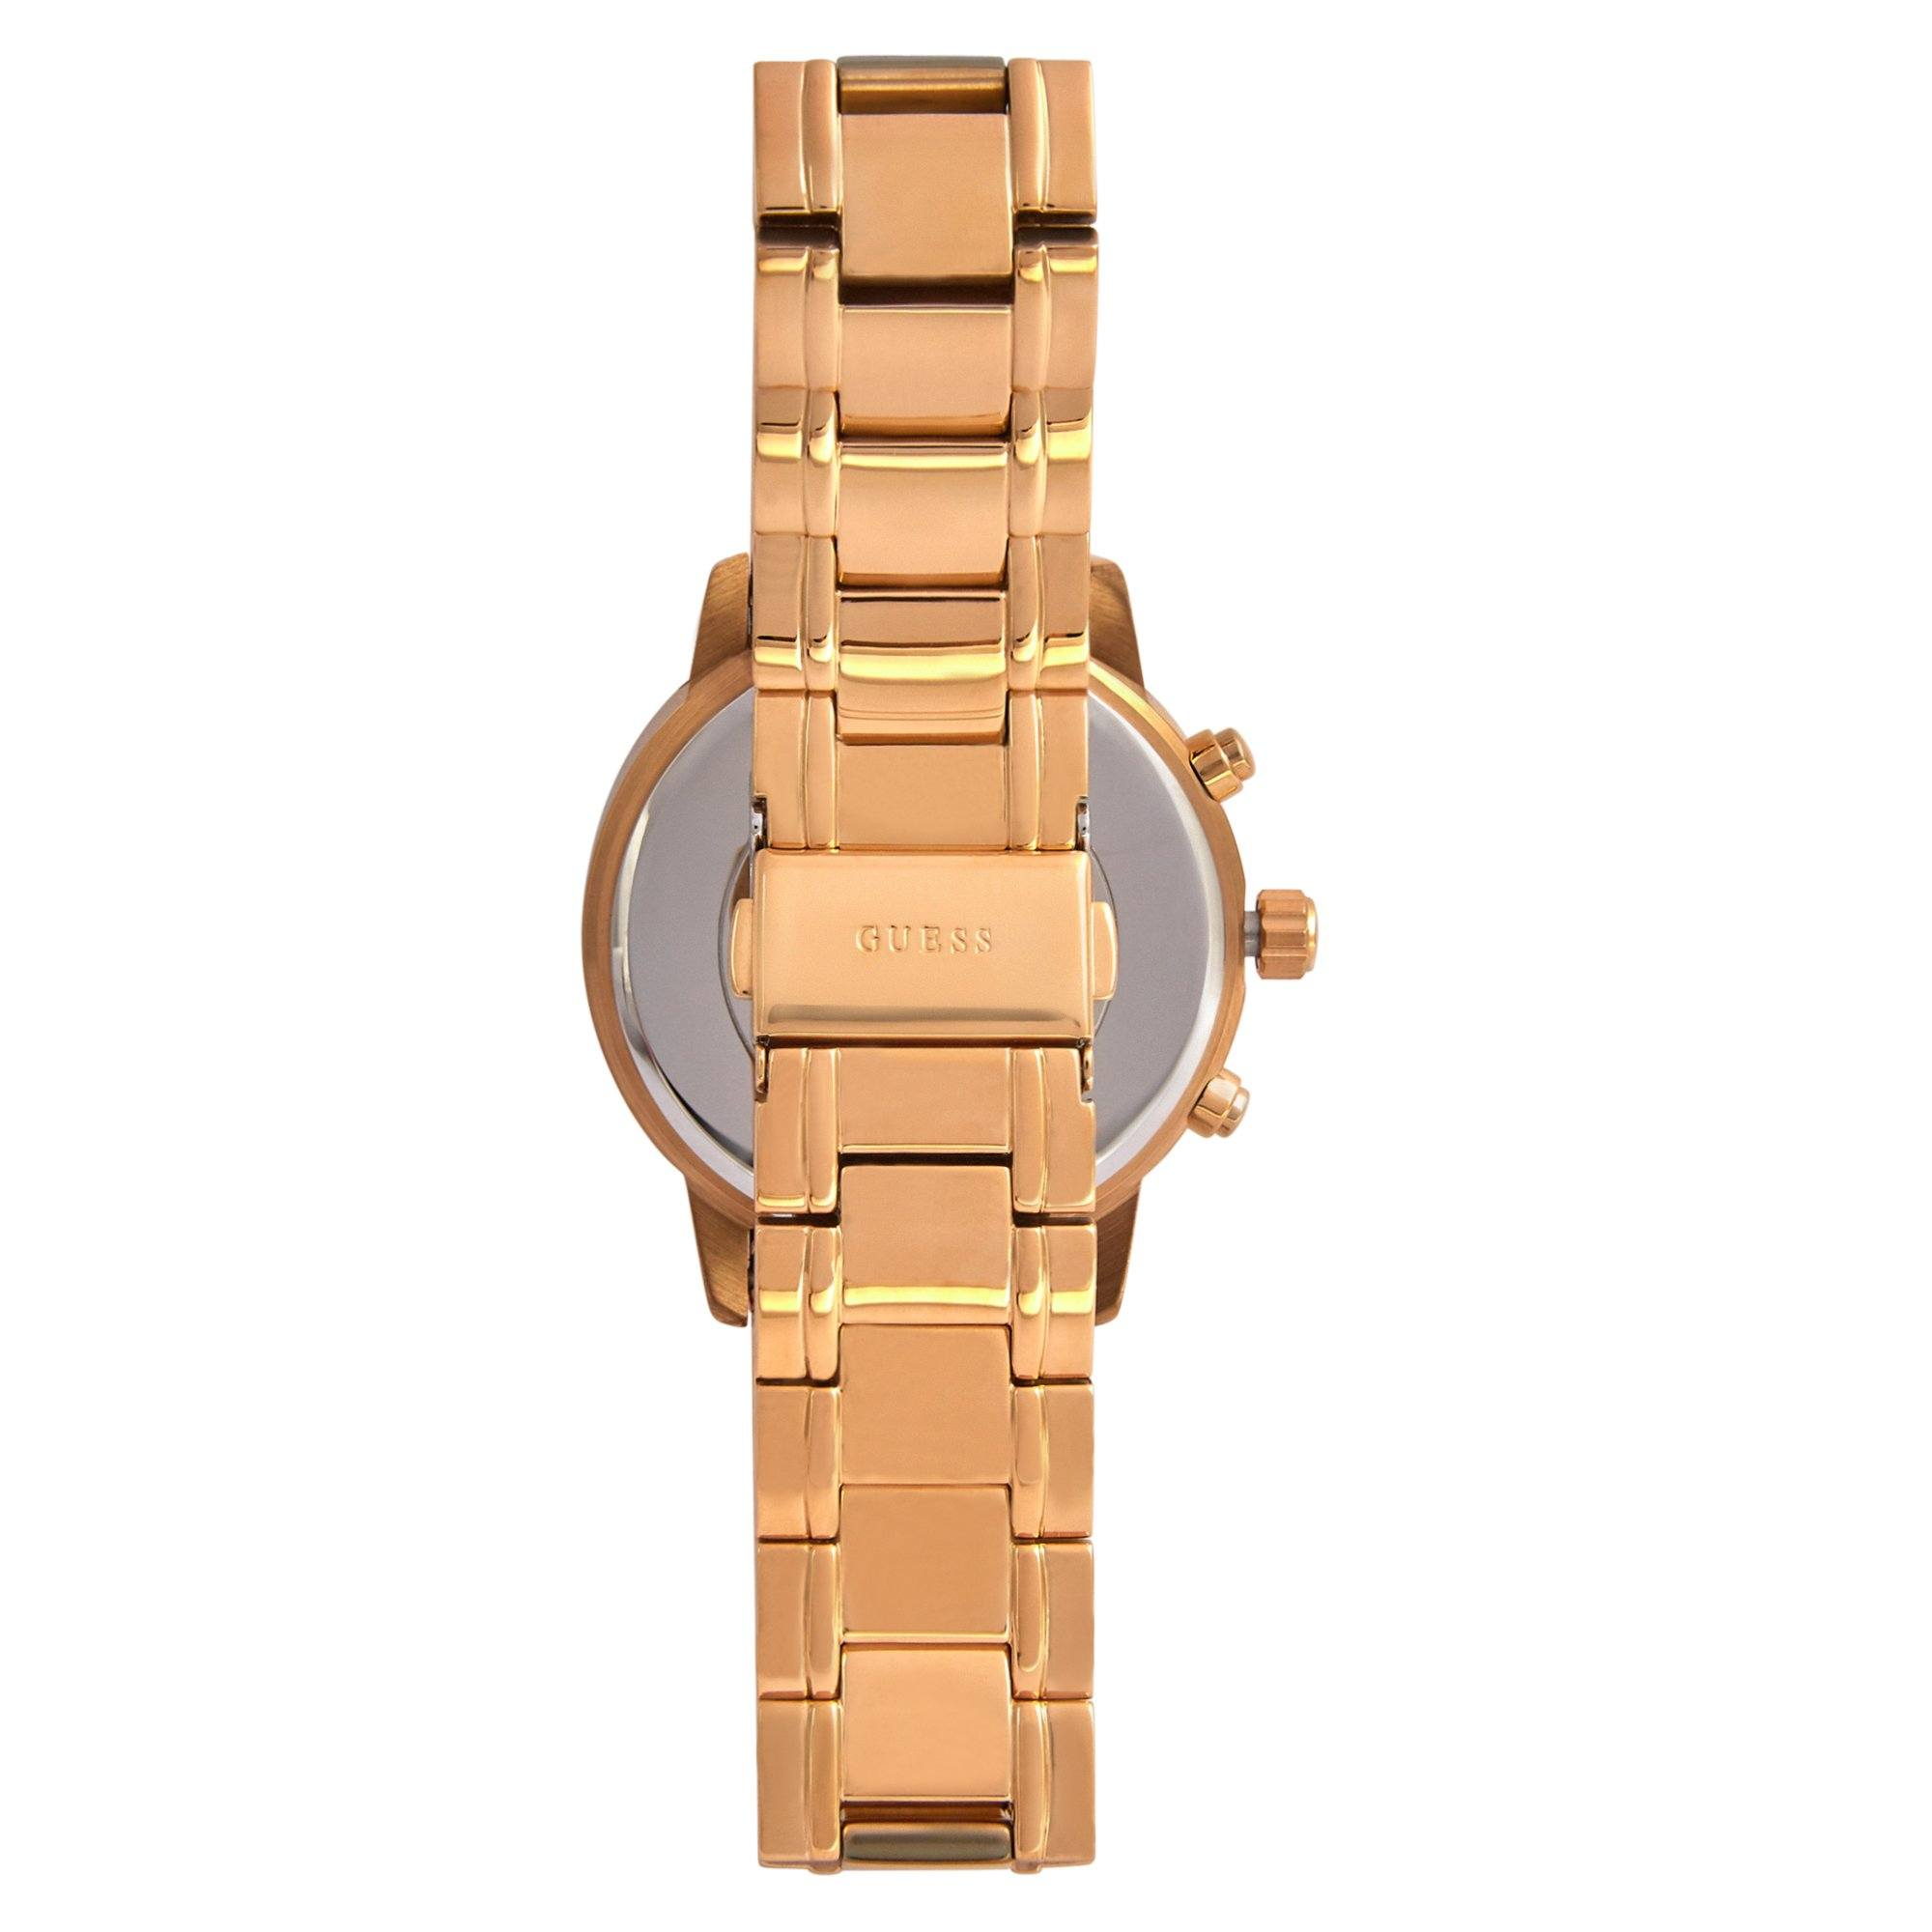 Guess Sunny Gold Bracelet Watch Watches Isbister & Co Wholesale